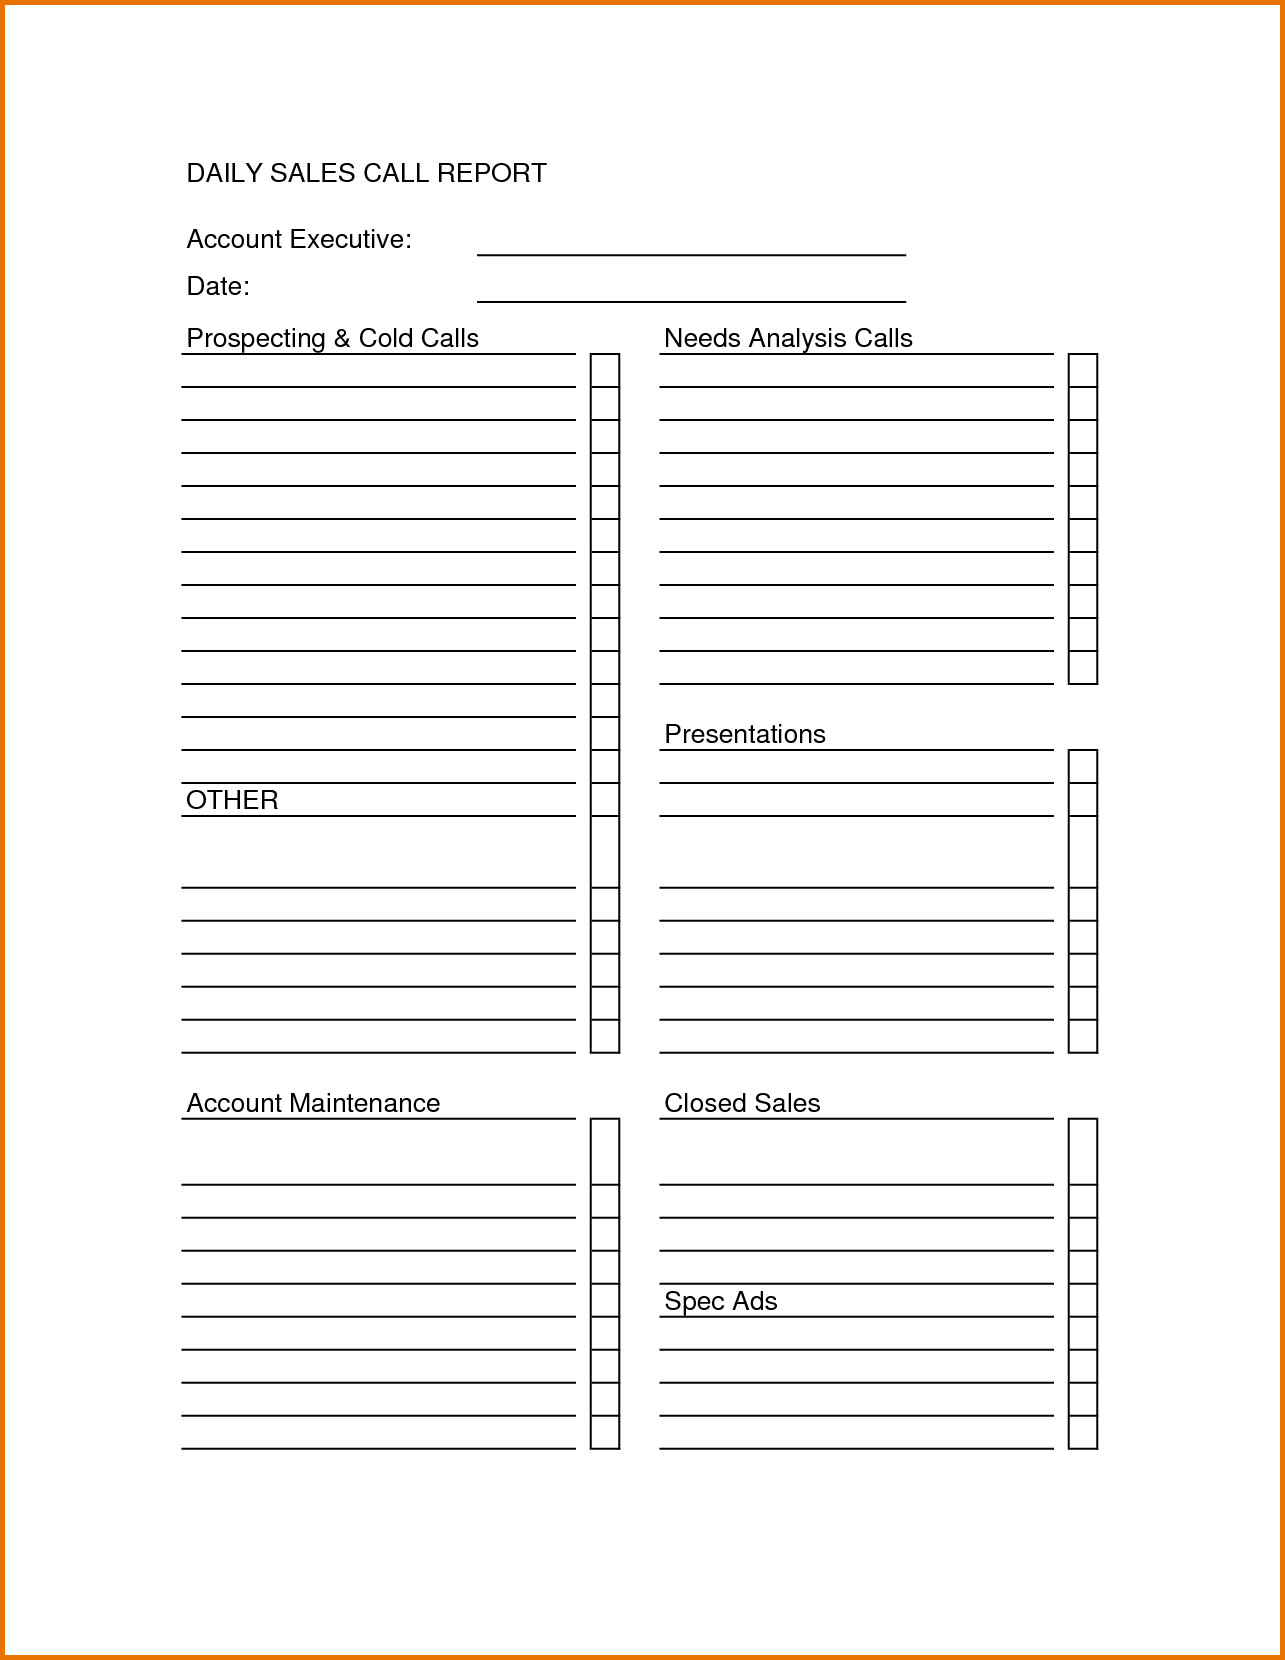 Sales Calls Report Template Sales Call Sheet Template Sales Call Report Sheet